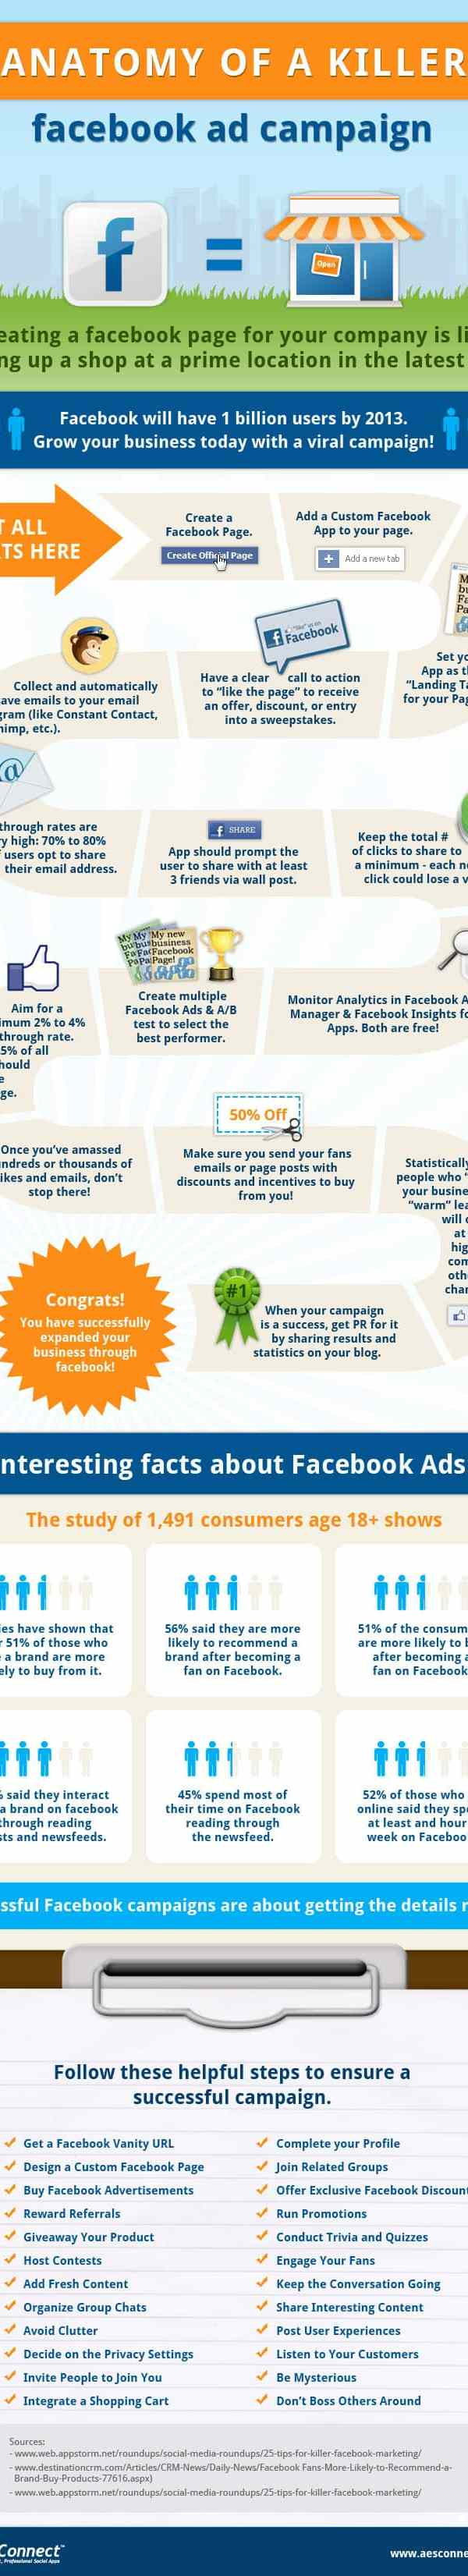 5 Free Tools to Research Demographics for Your Facebook Ads (with Infographic) Facebook  anatomy_of_a_killer_facebook_ad_campaign_for_social_media_success_aesconnect